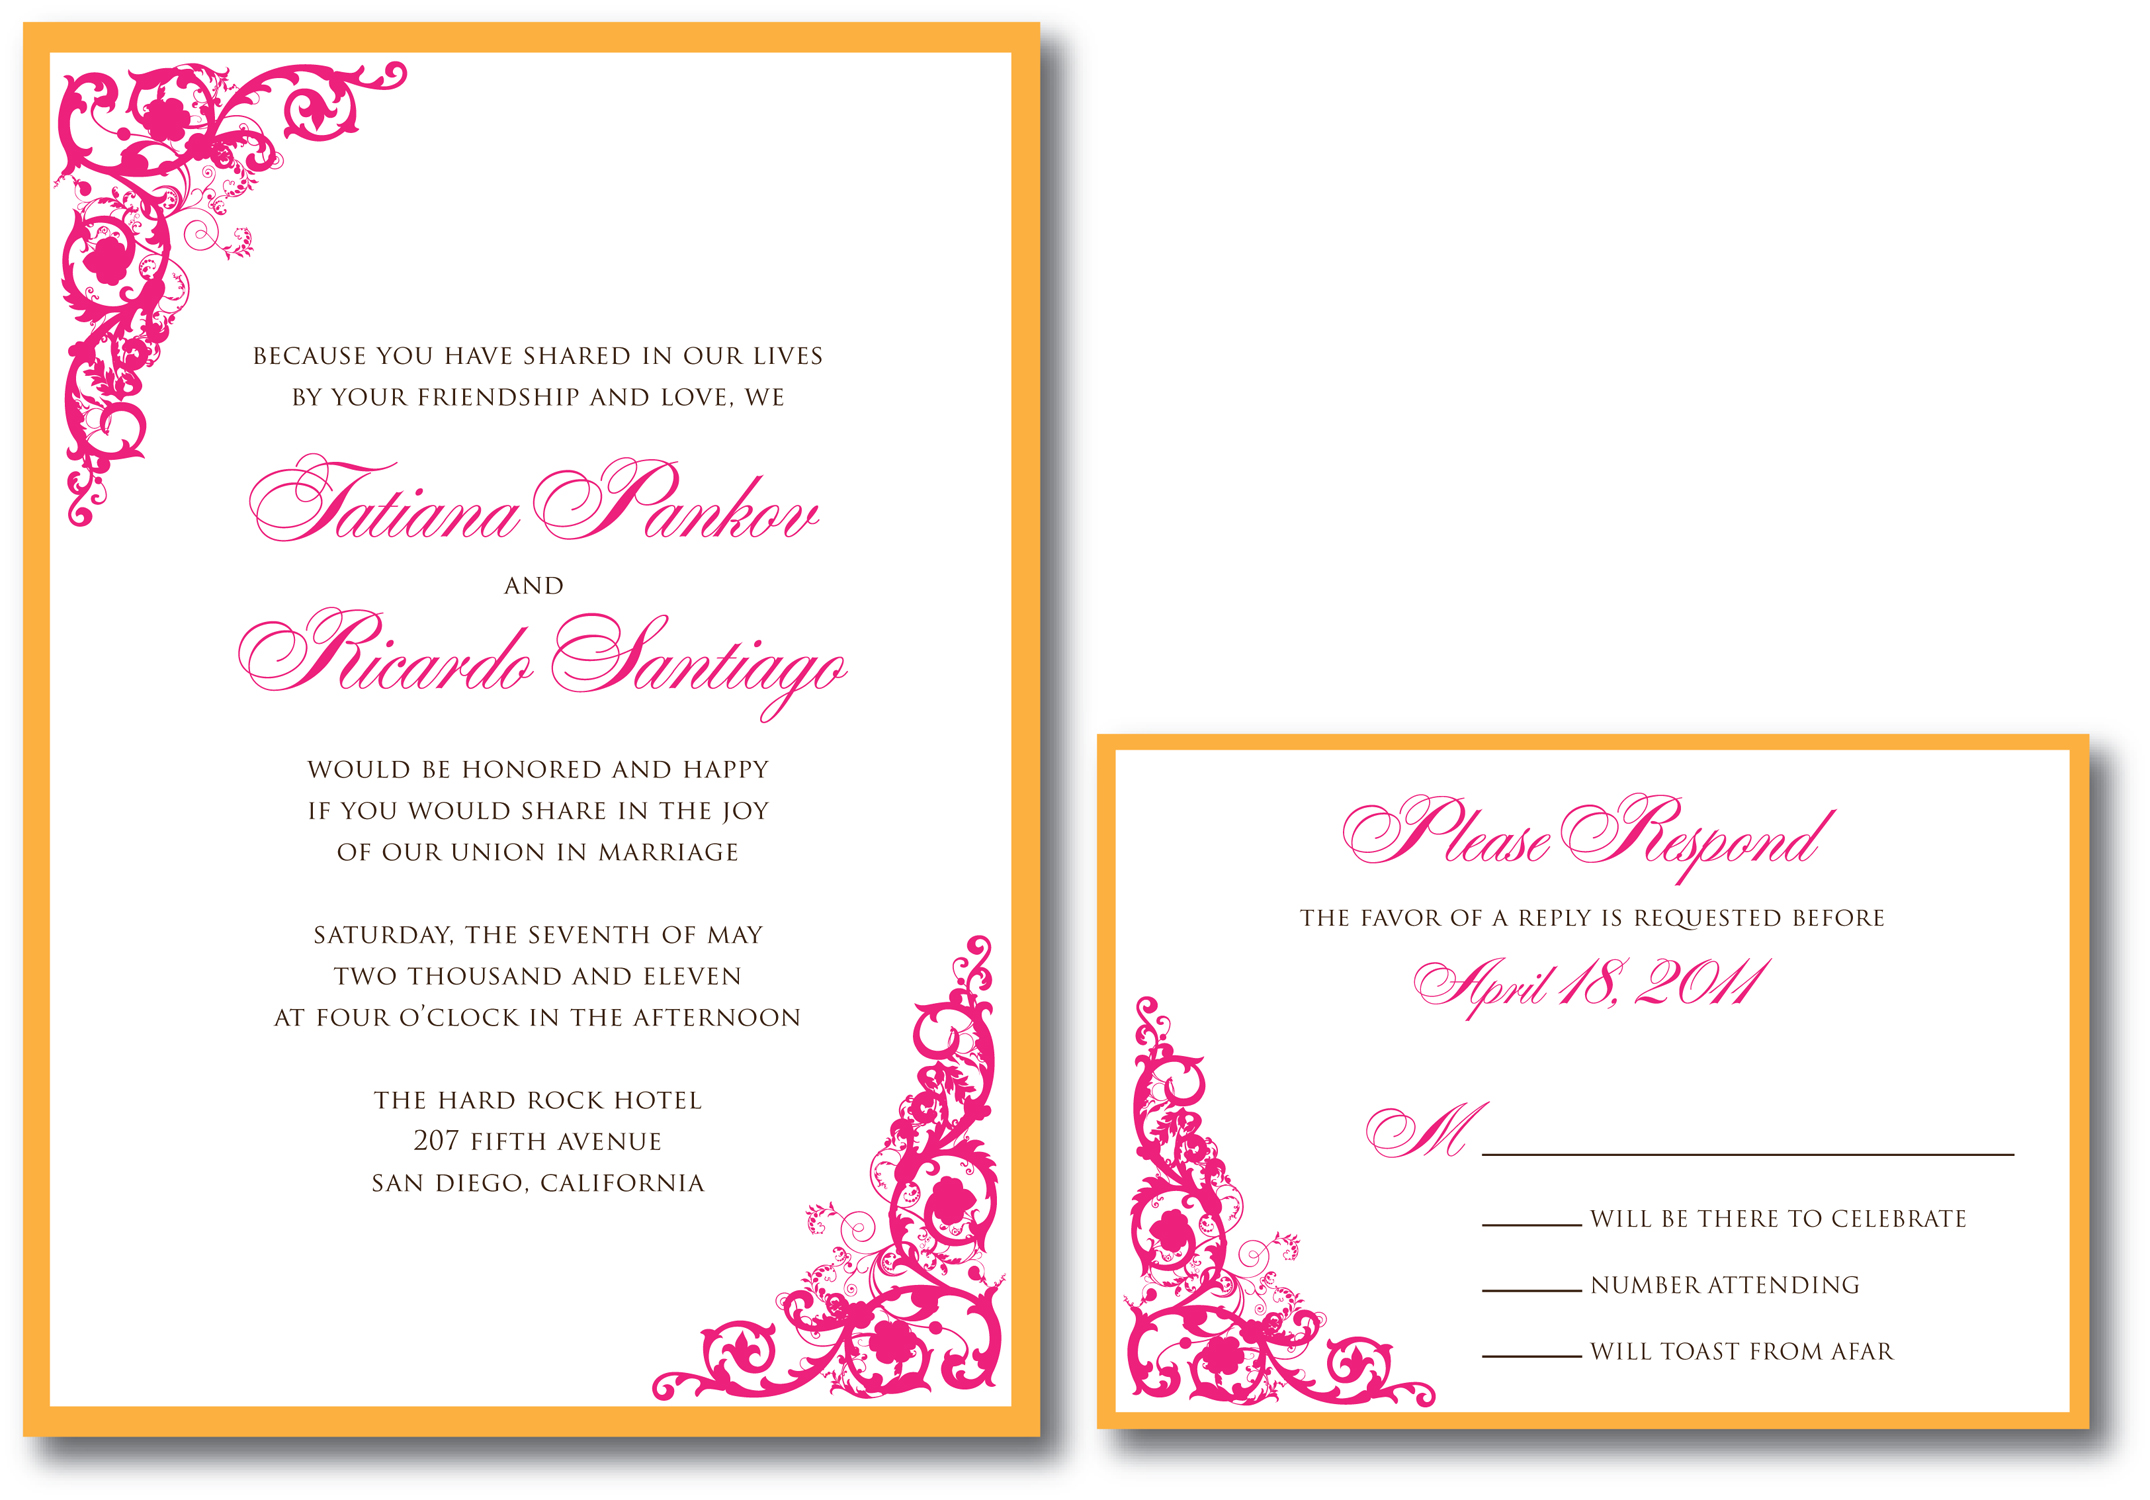 Wedding Invitations Images is one of our best ideas you might choose for invitation design